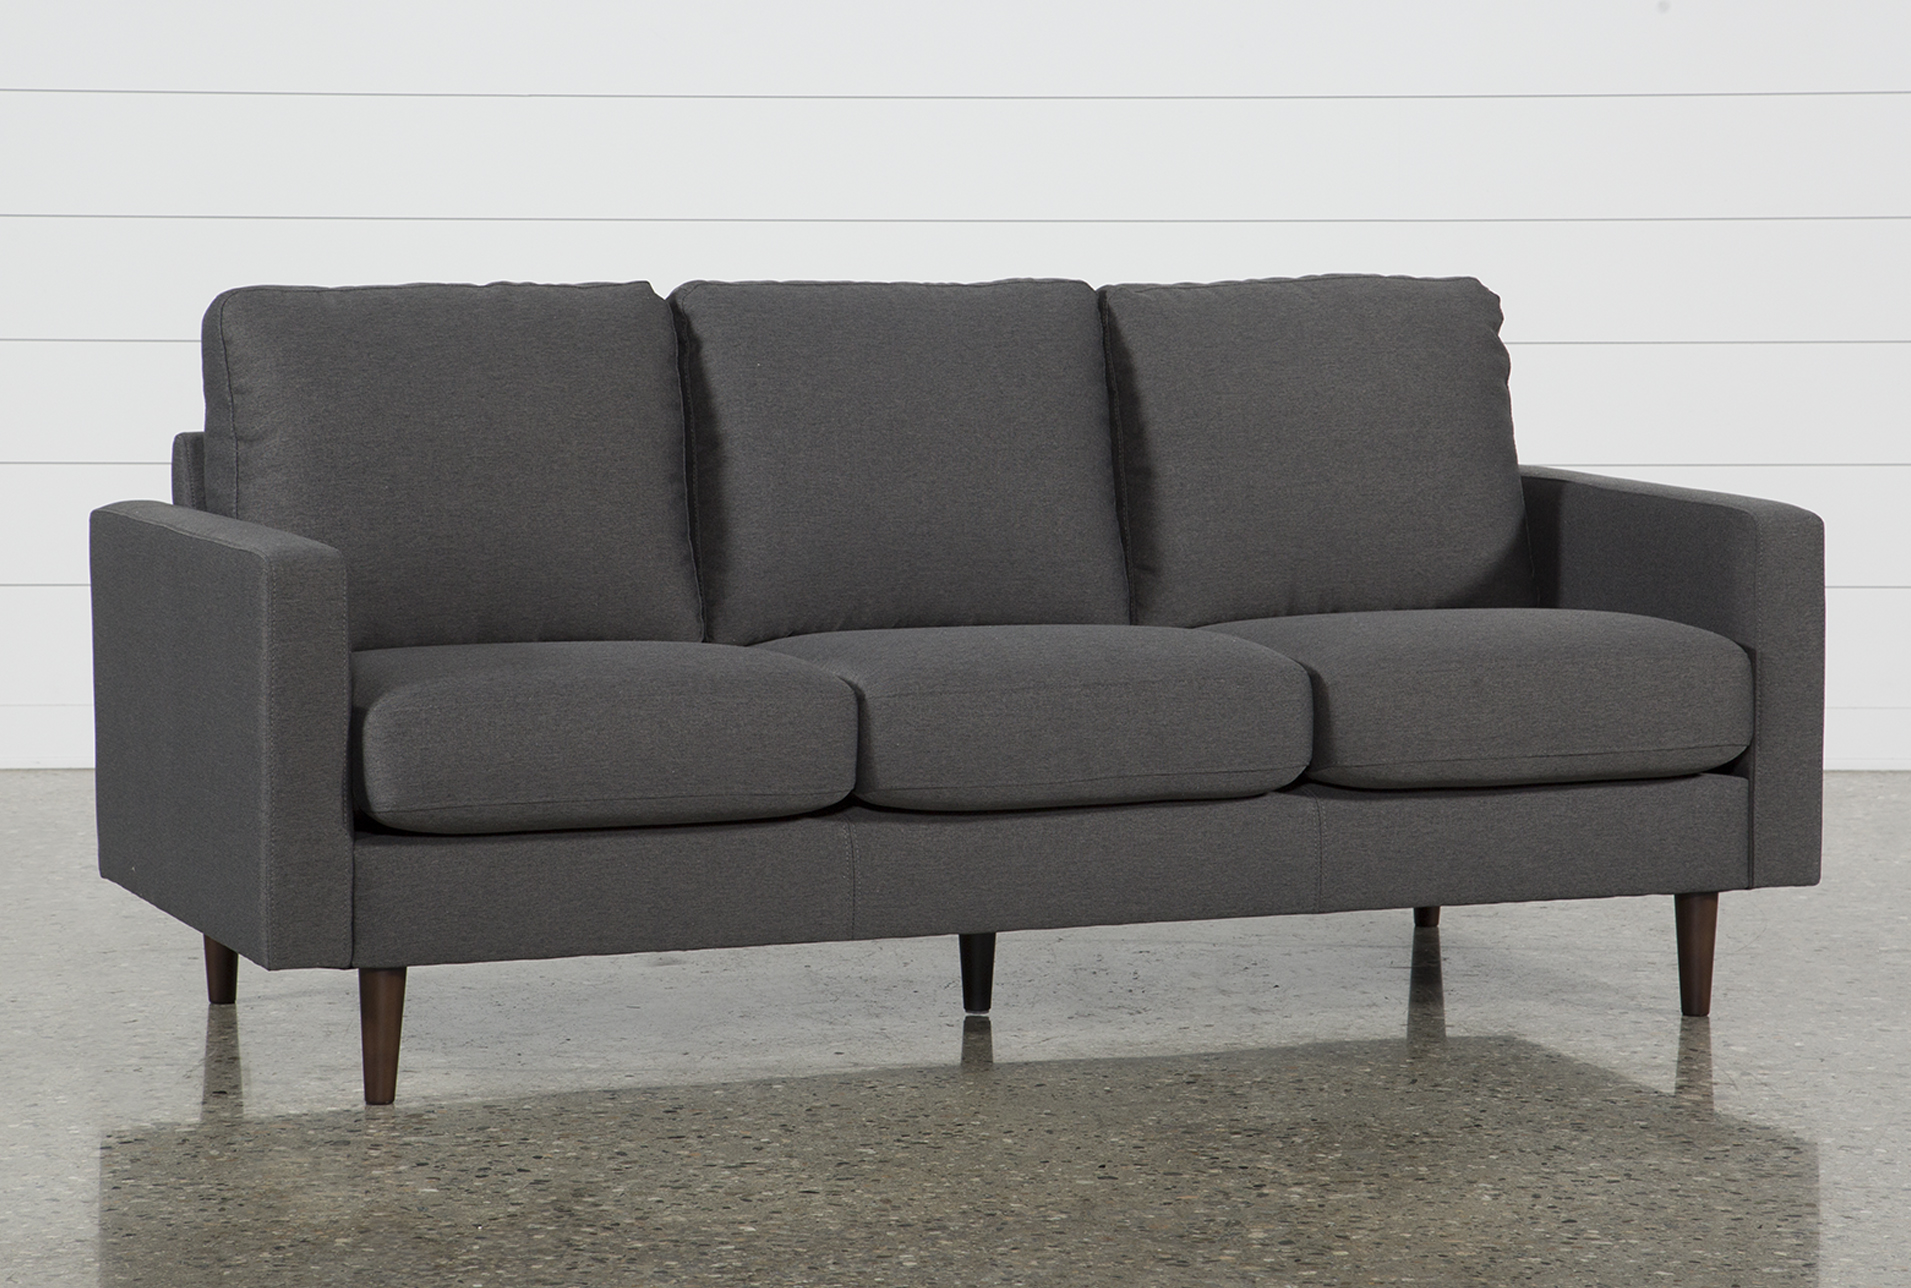 David Dark Grey Sofa (Qty: 1) Has Been Successfully Added To Your Cart.